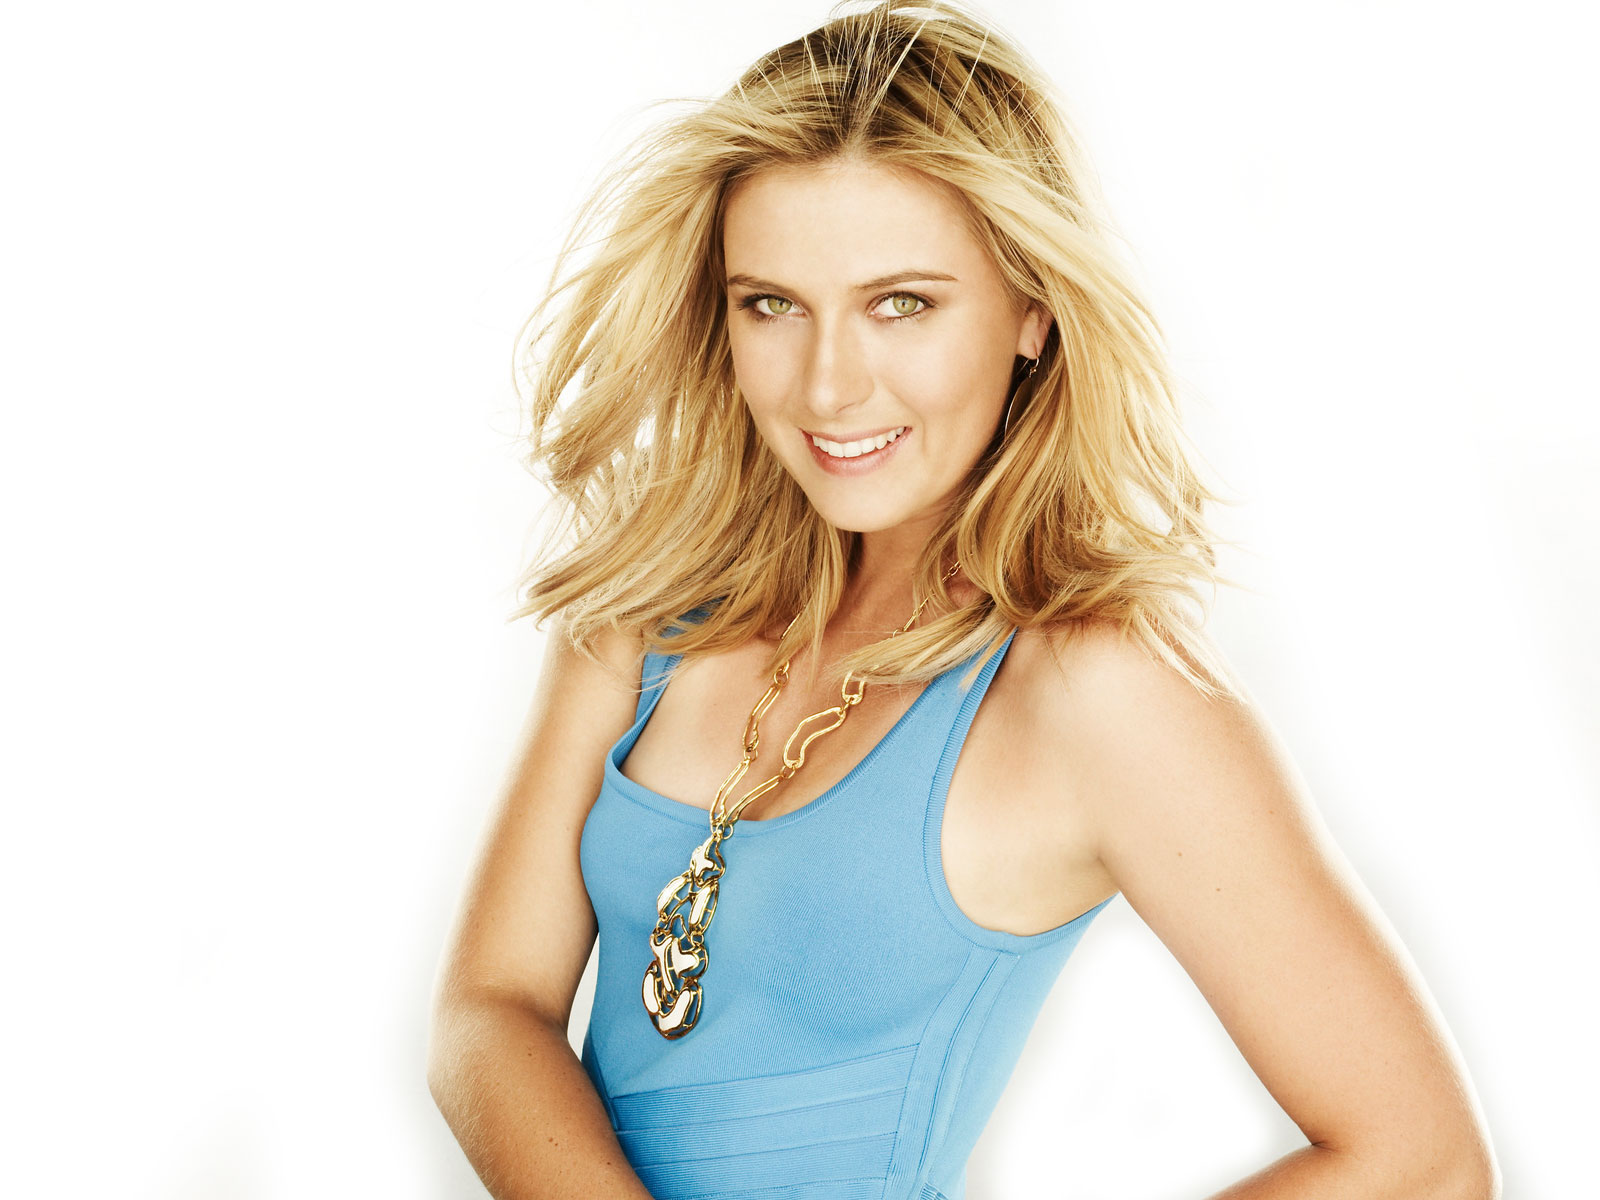 Maria Sharapova 7 220.11 Kb